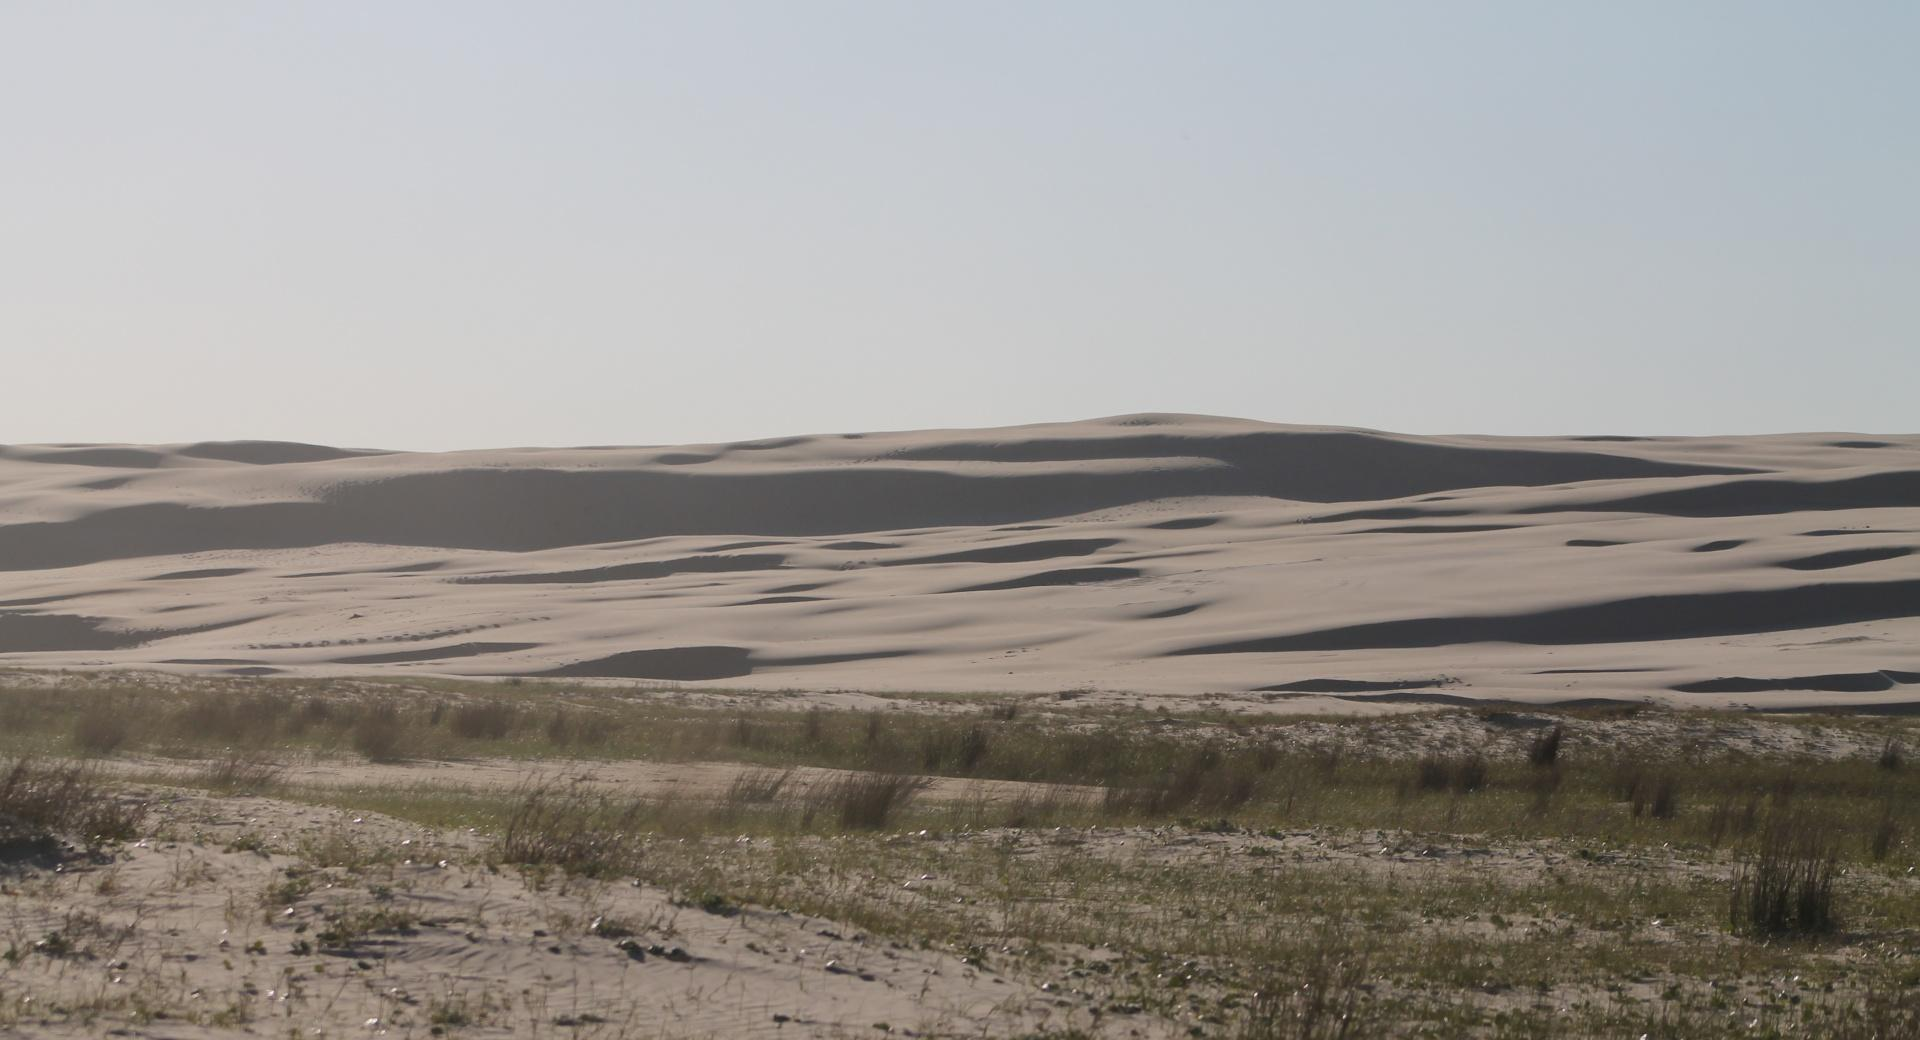 Sand Dunes wallpapers HD quality